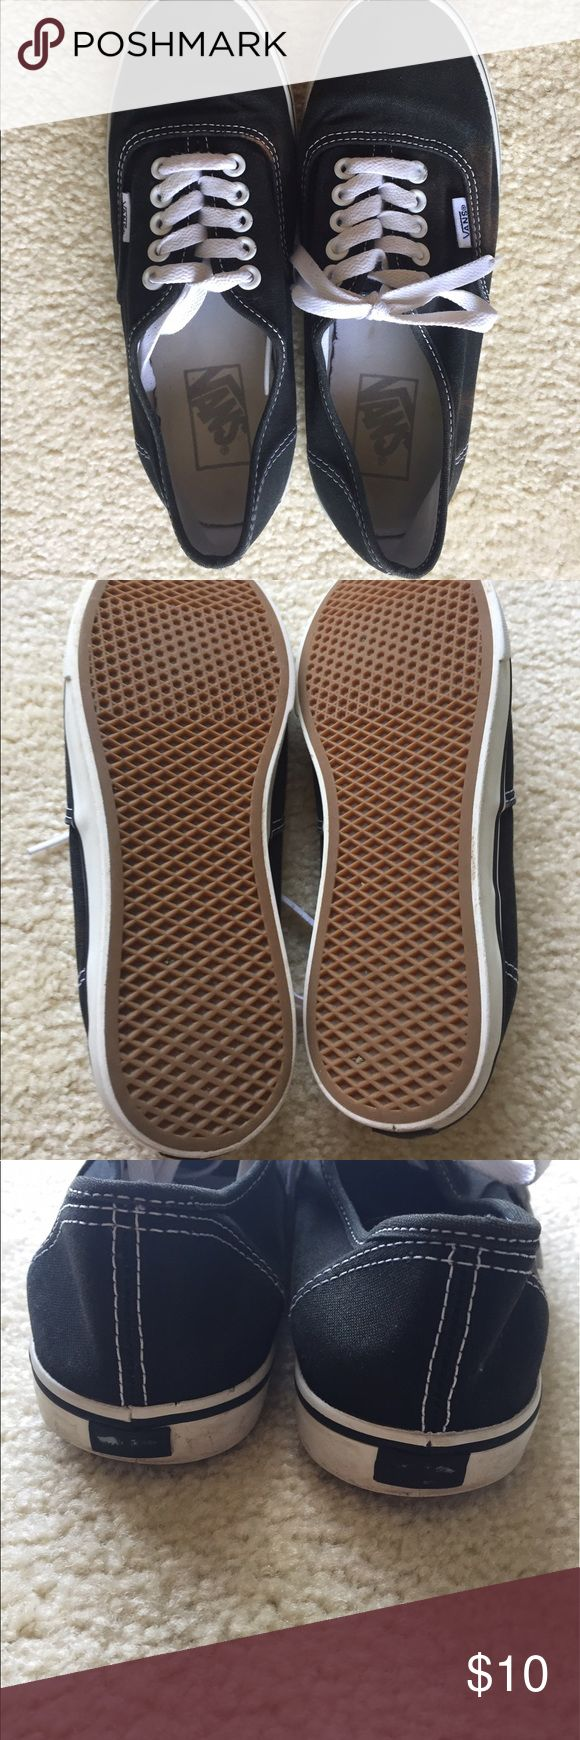 Black Vans Woman's 7 Good condition woman's 7 men's 5.5! Please note the stains and fading of the logo on the back. Stains are not real noticeable, but are most certainly there. Reasonable offers are considered through the offer button Vans Shoes Sneakers